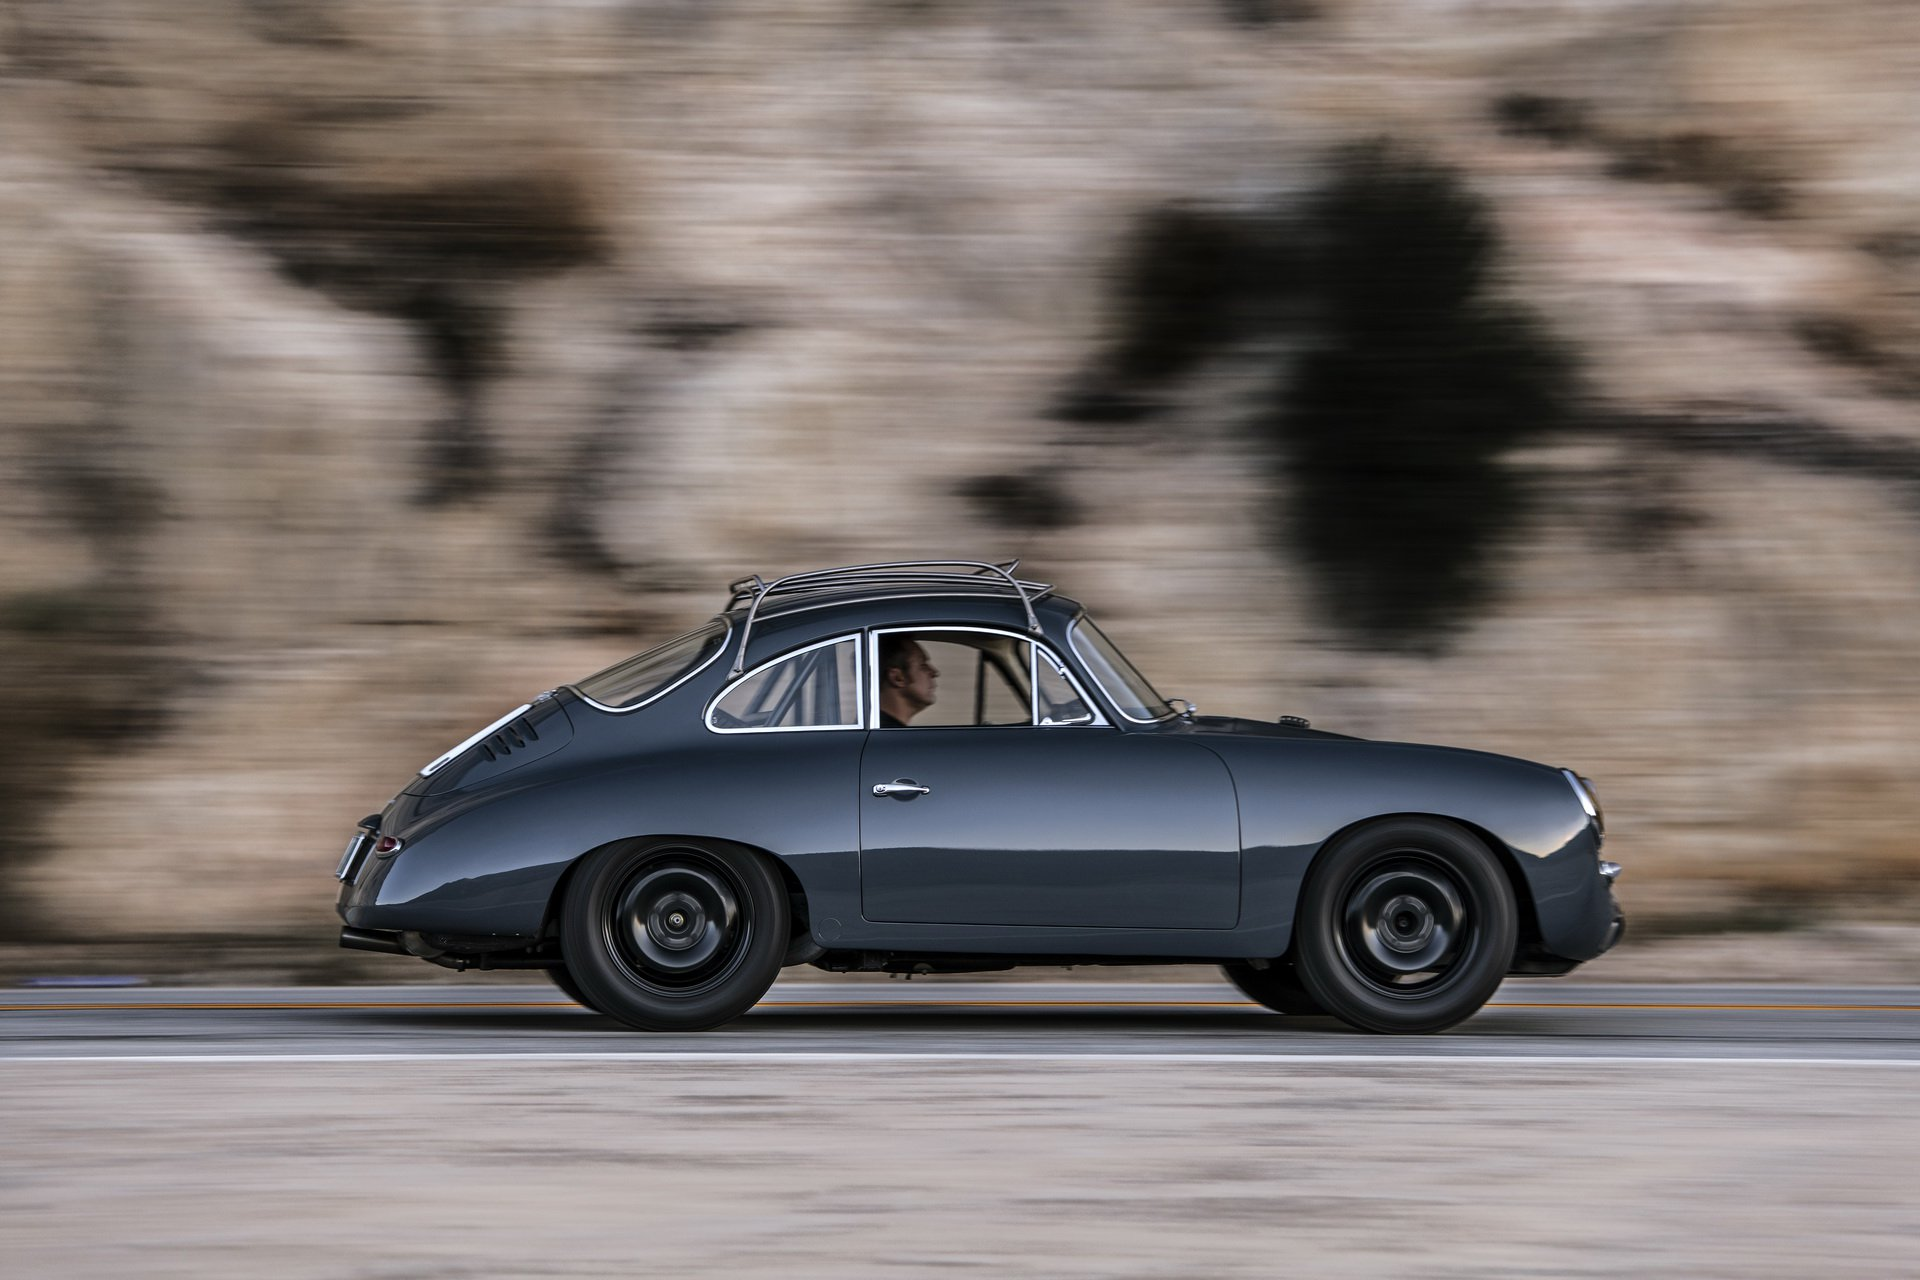 AWD Porsche 356 Coupe by Emory Motorsports (28)